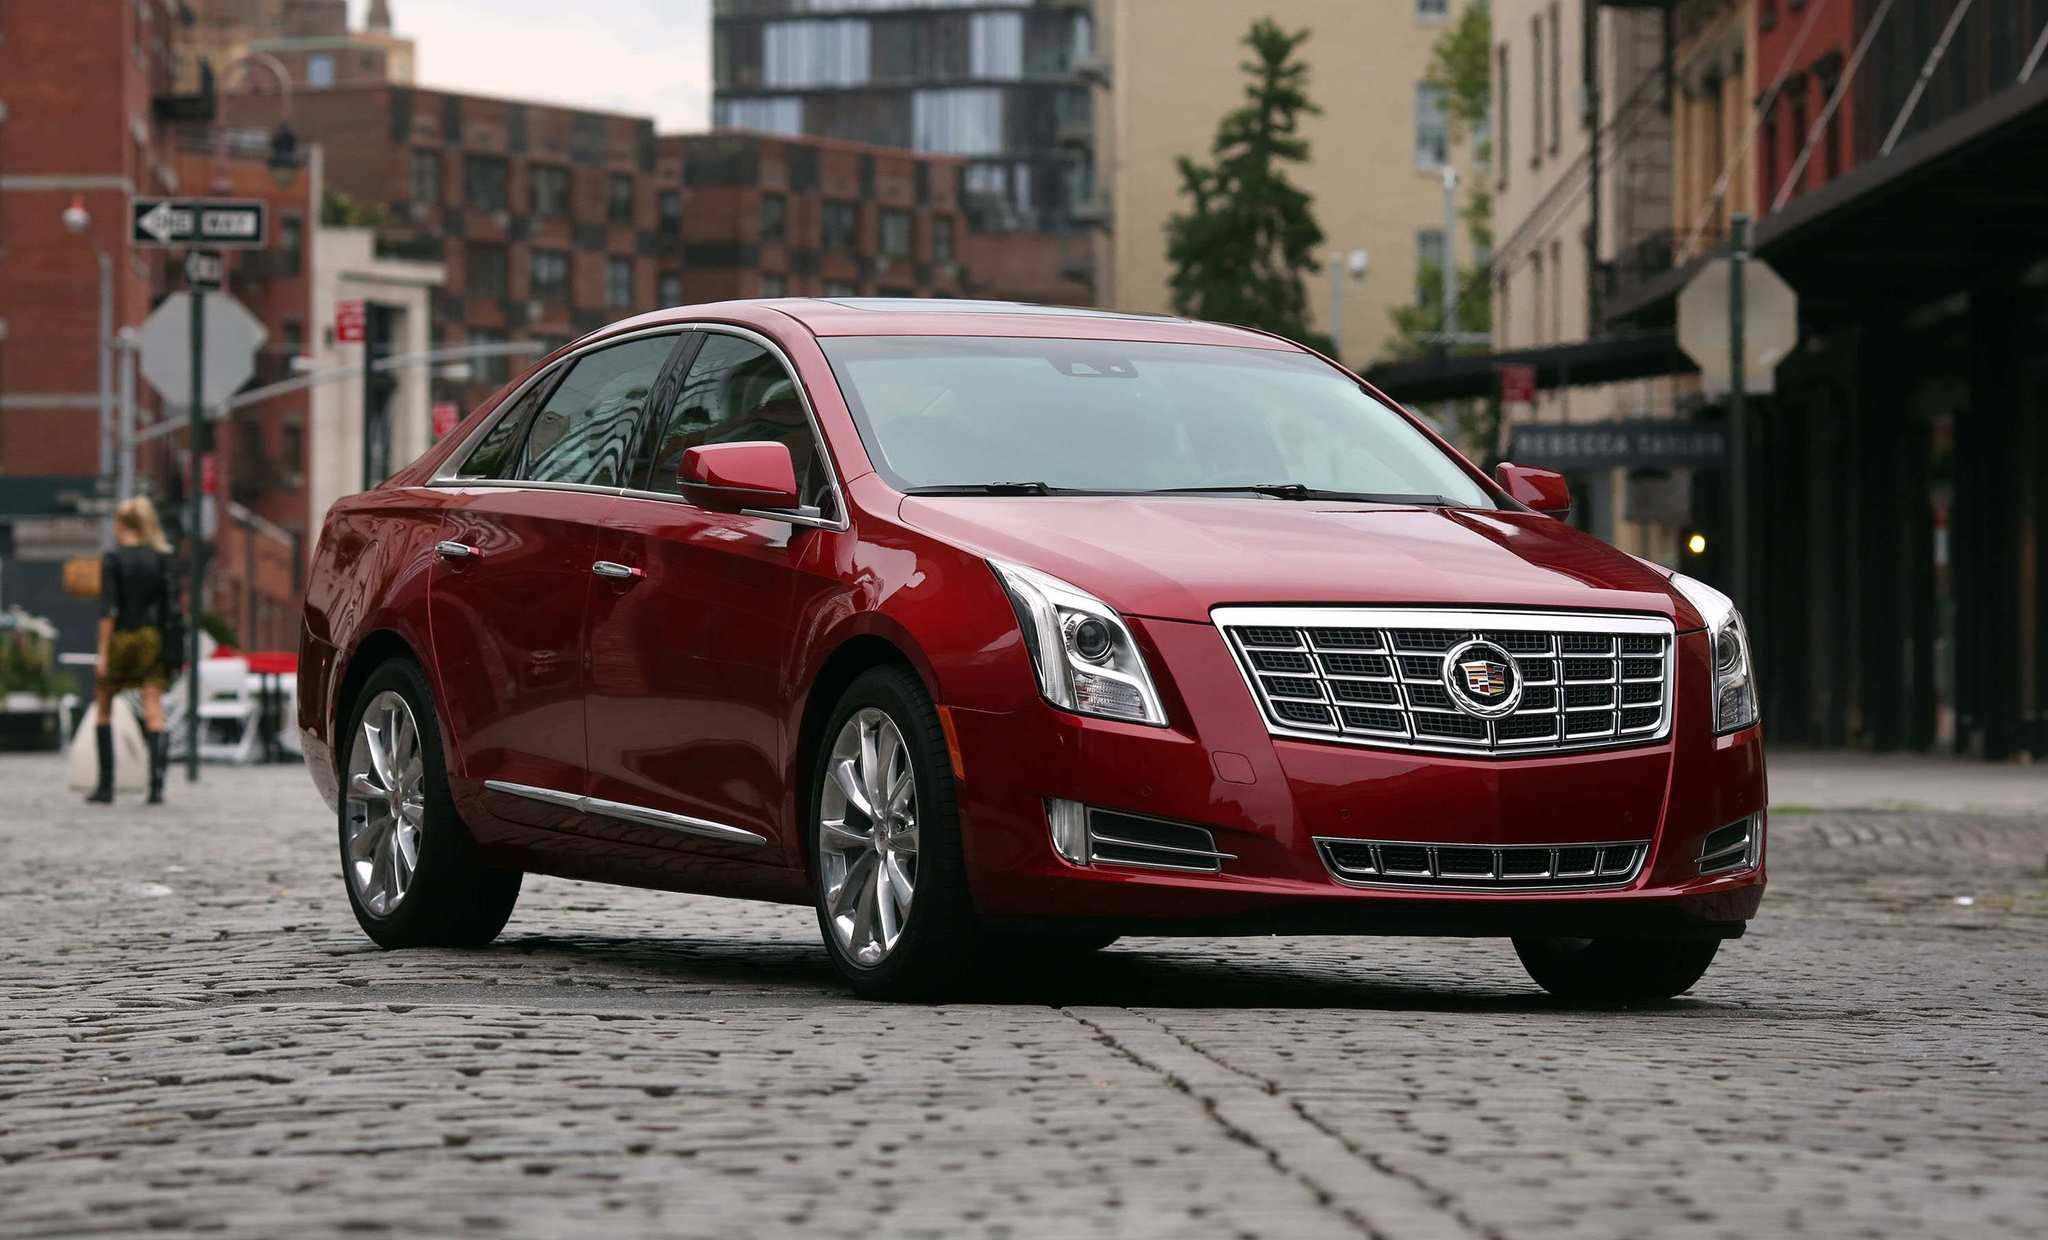 The 2013 Cadillac XTS - Exterior shell